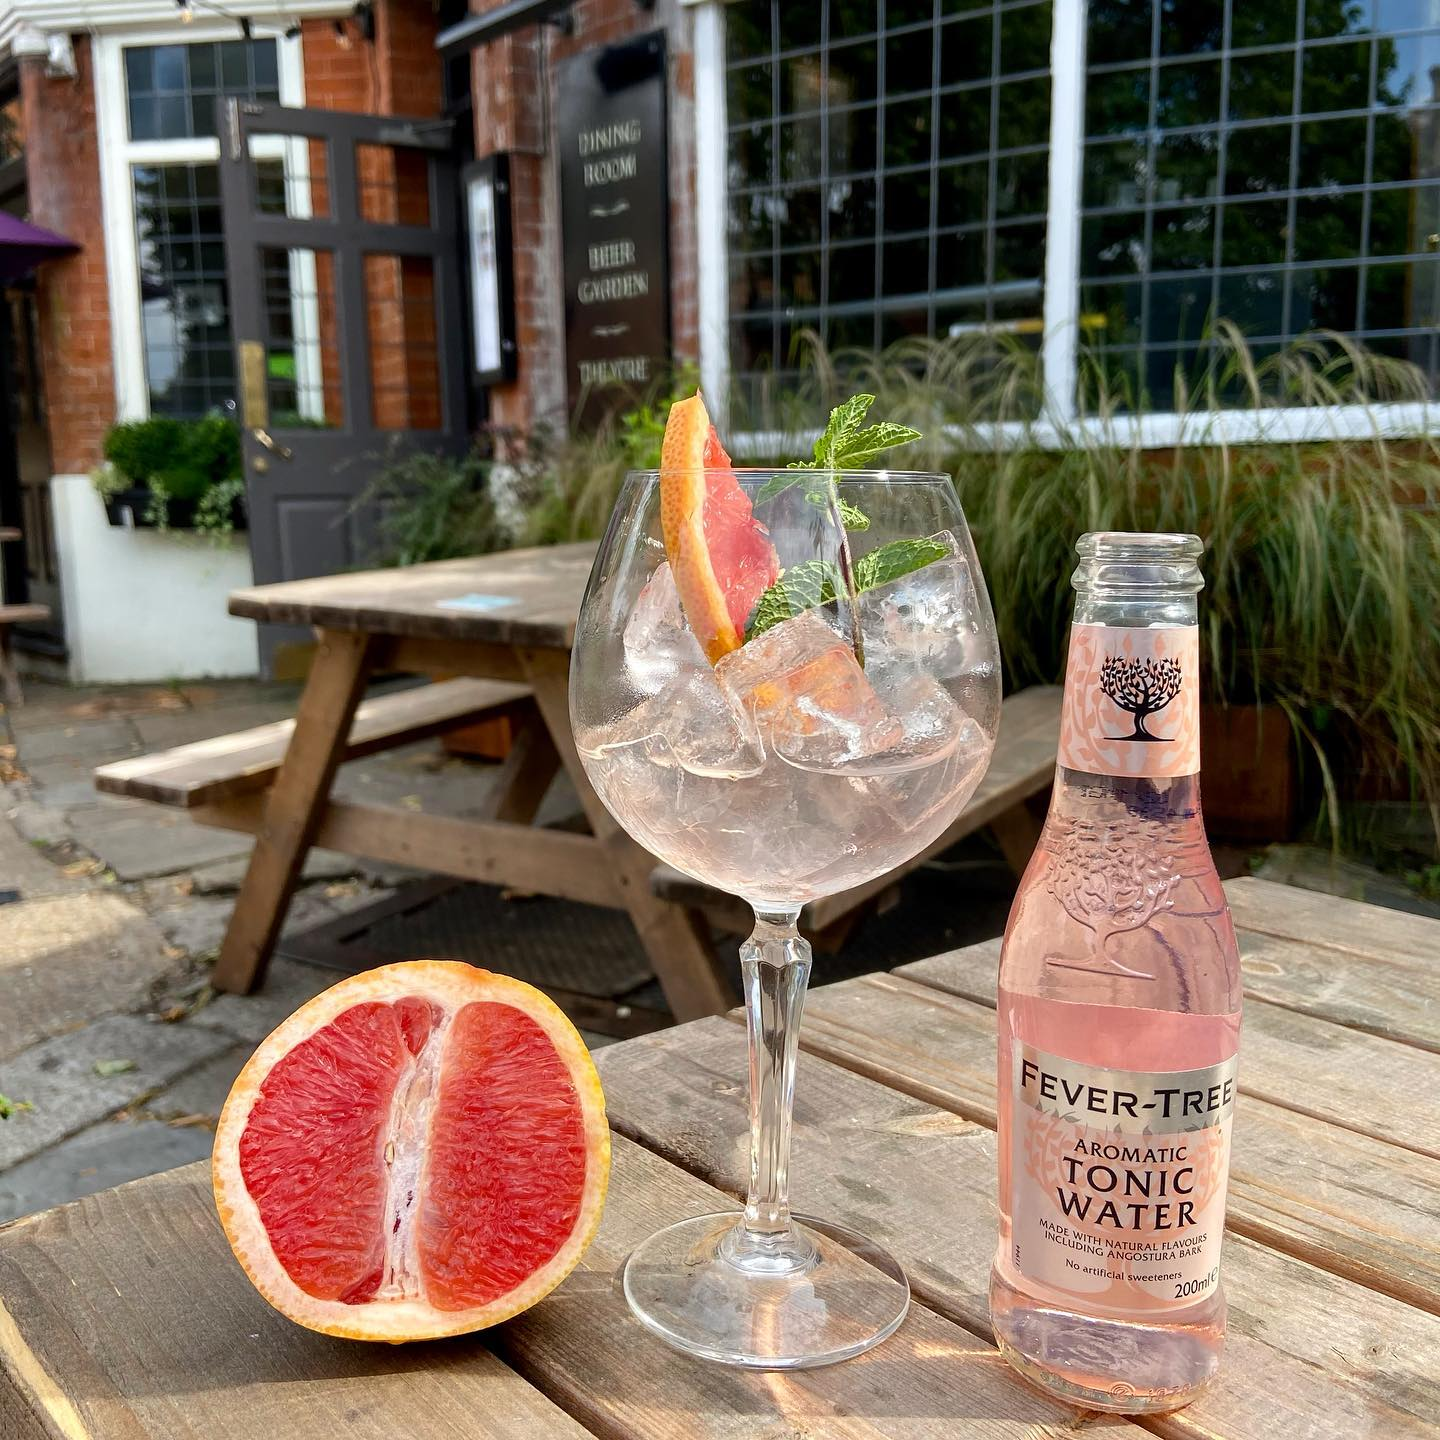 Happy Tuesday Highgate! Stop by for a refreshing Malfy Rosa Gin and Tonic. Kick start your week in the right way.   #gin #summer #gardendining #northlondonpubs #july #highgate #hampstead #tonic #refreshing #grapefruit #cocktail #drinks #london